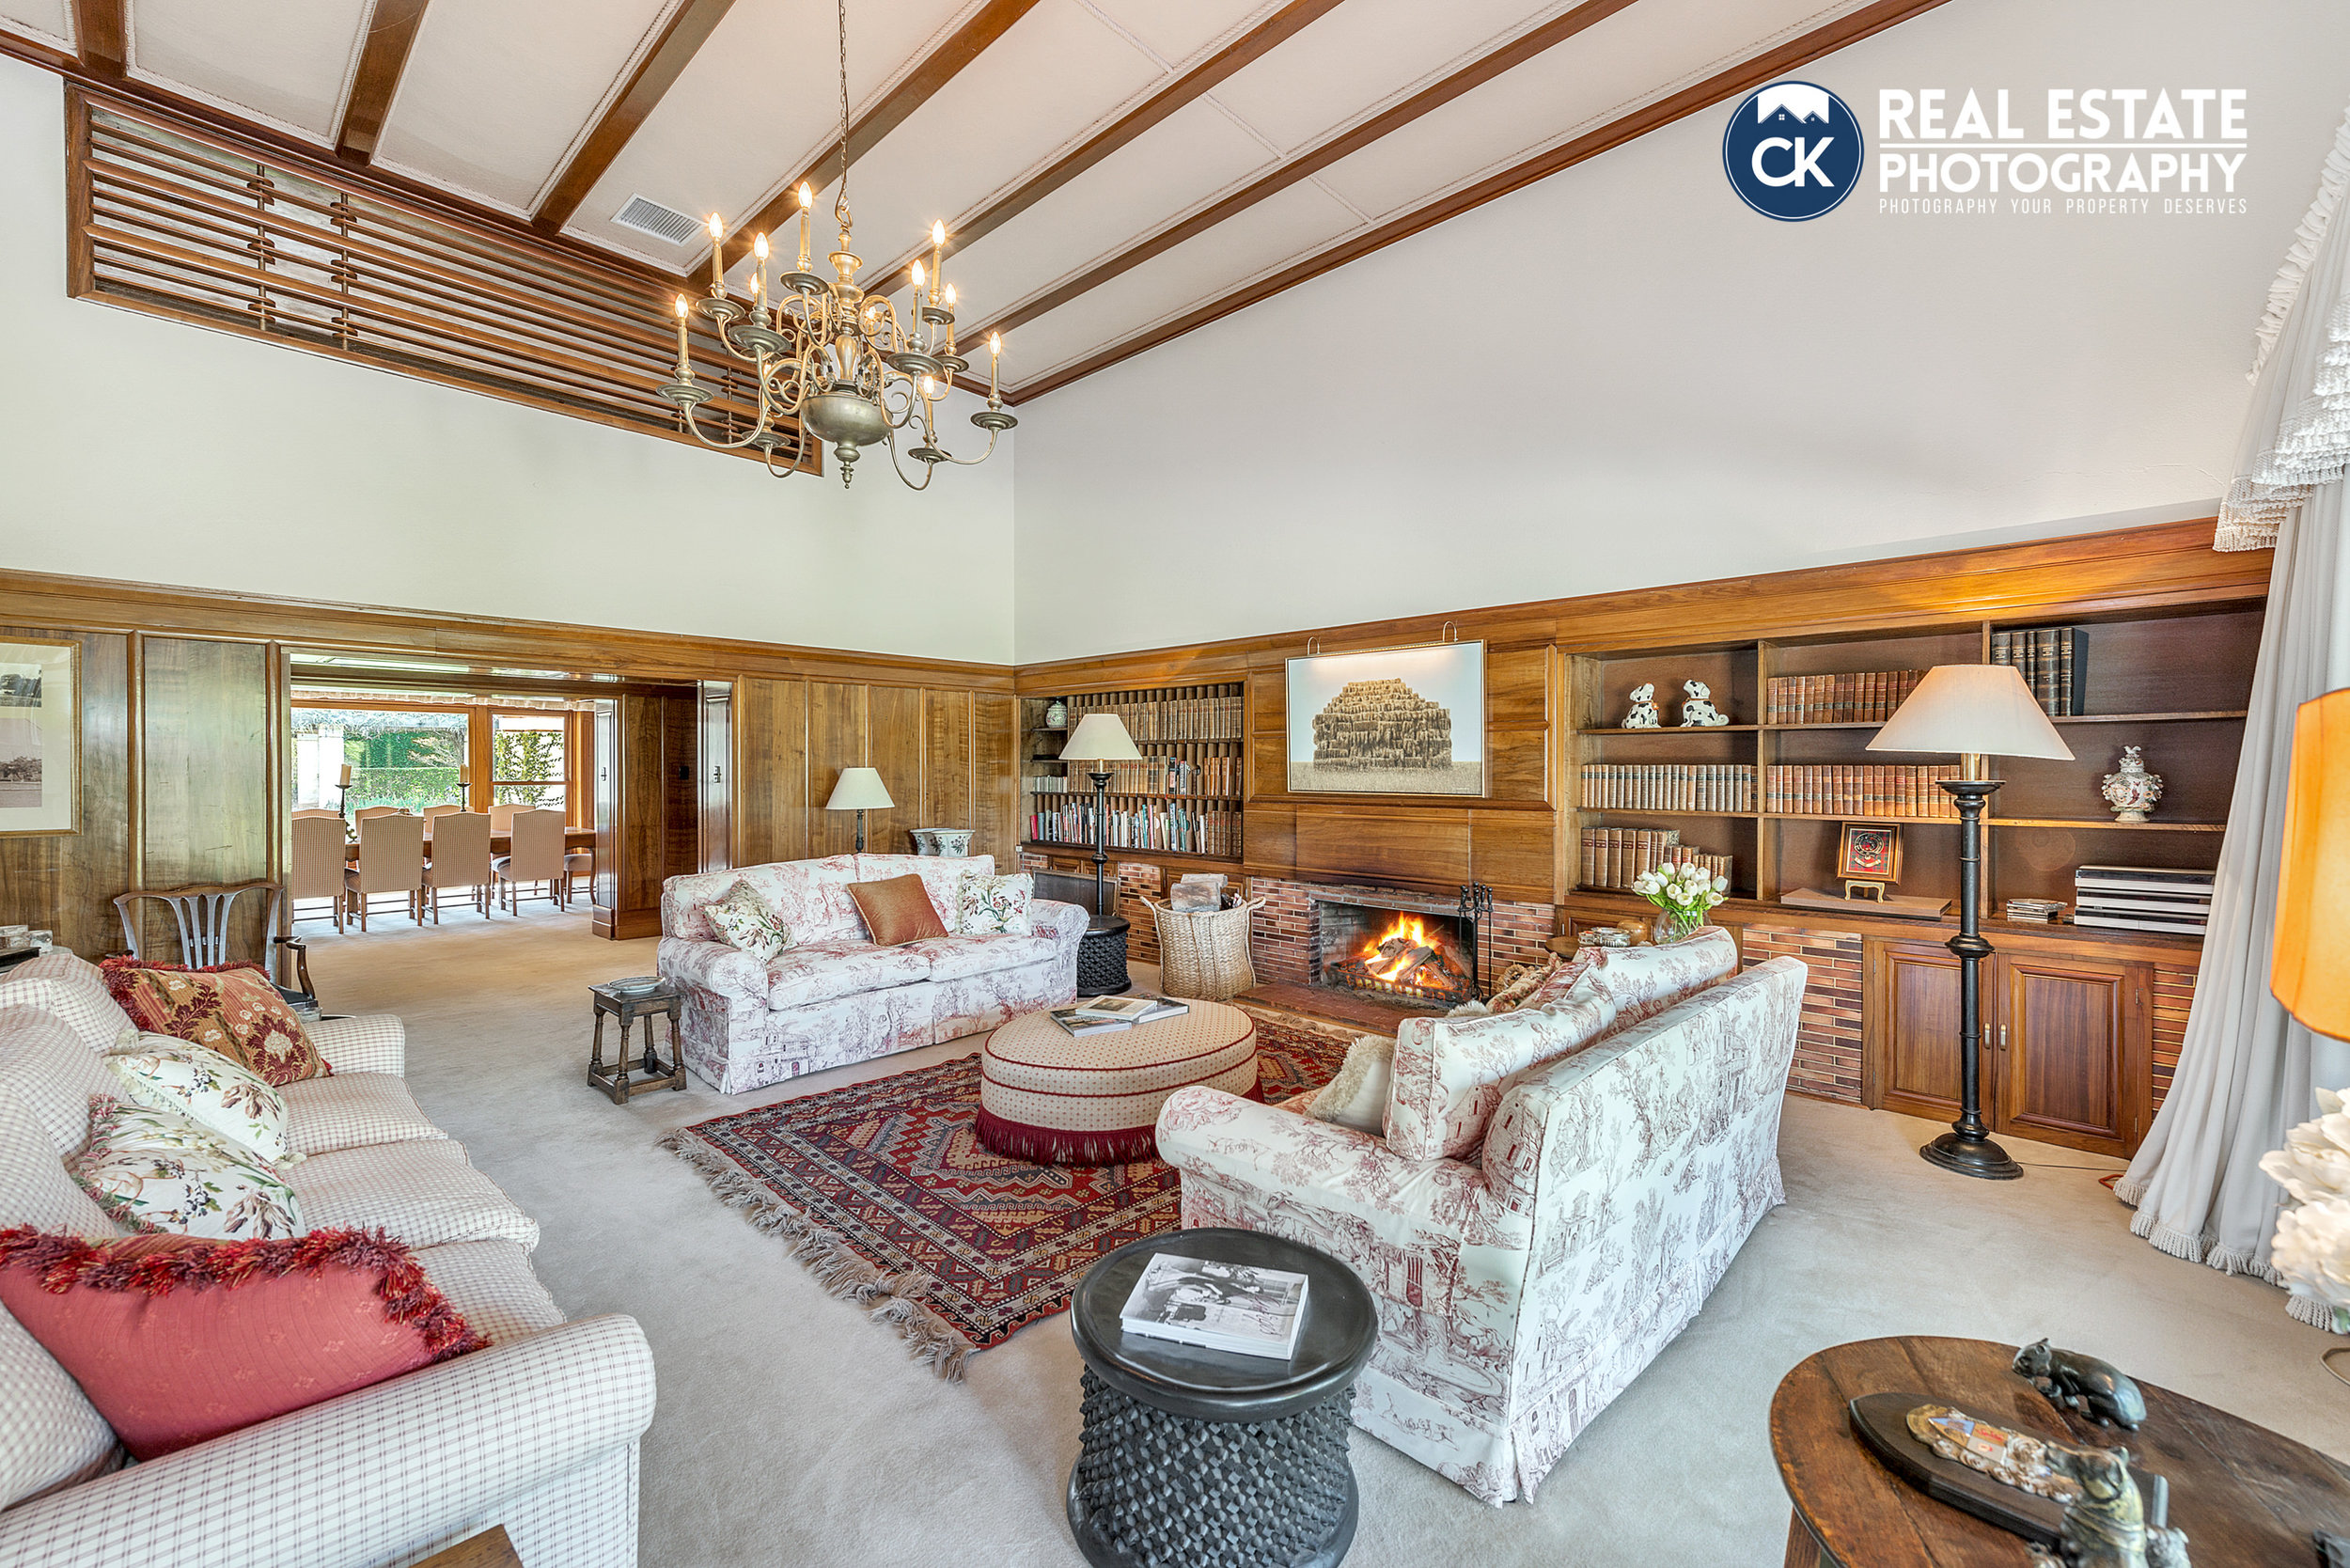 Rural Real Estate Photography in Geelong